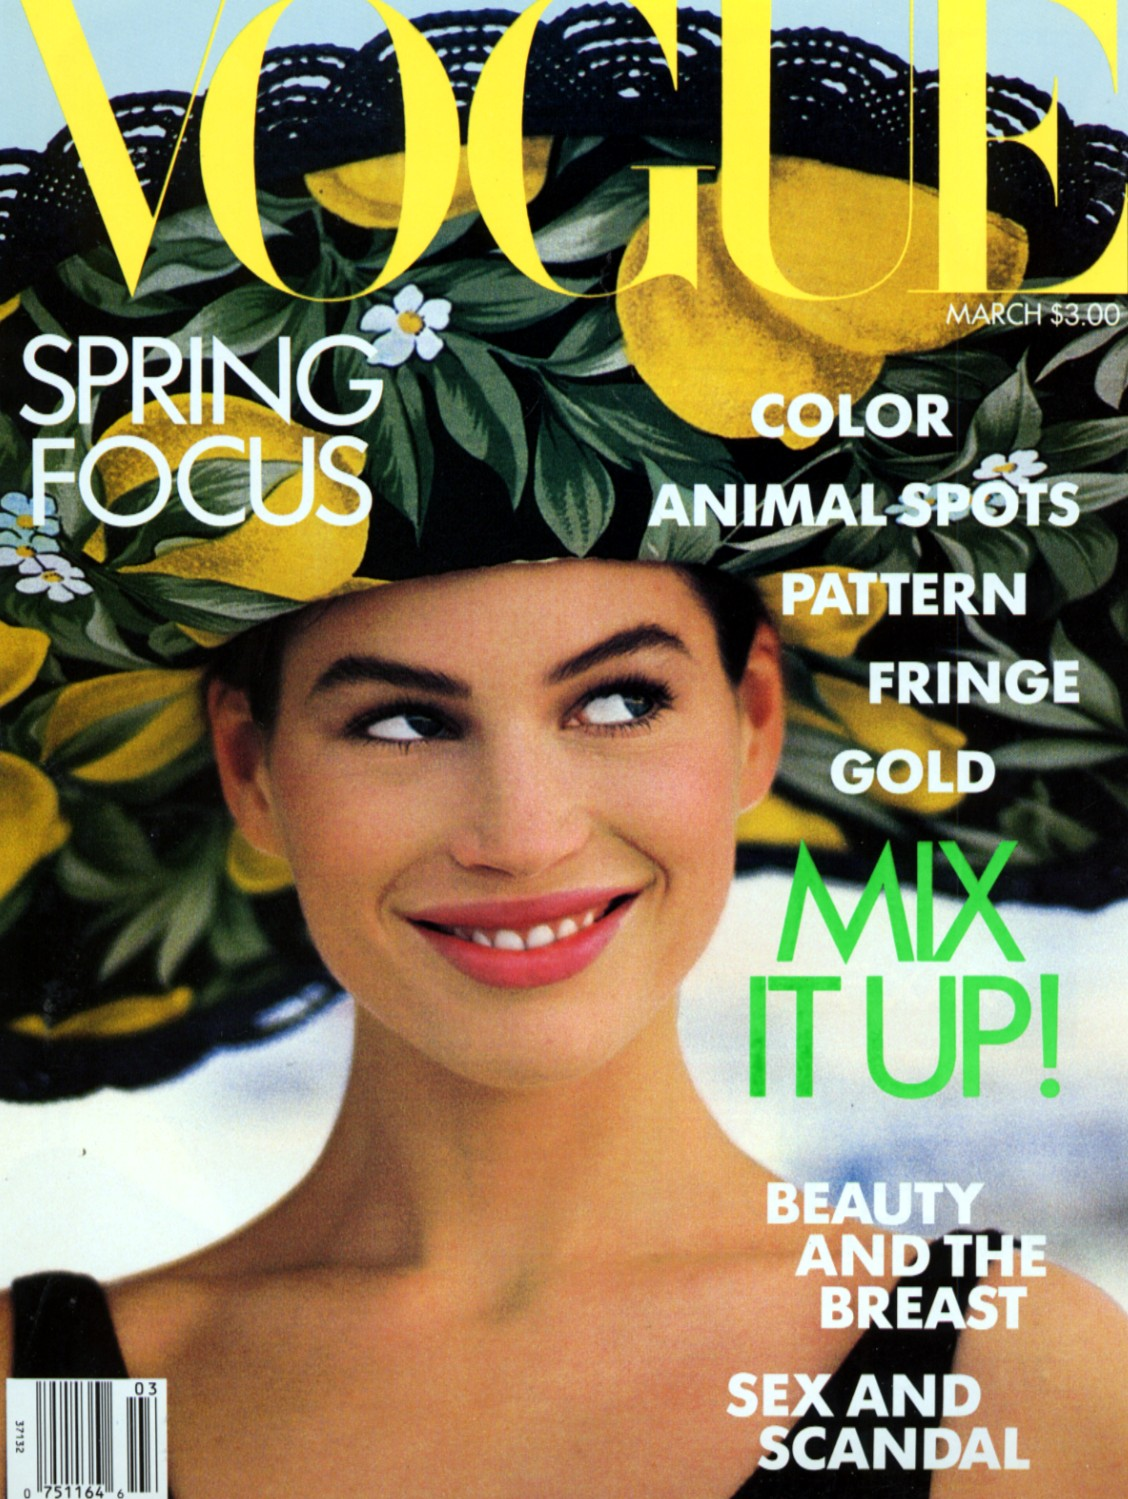 http://3.bp.blogspot.com/-t13i0prXbi4/Tg45kPM60bI/AAAAAAAABro/Qp6AnRmgT6o/s1600/Carre+US+Vogue+March+1989.jpg